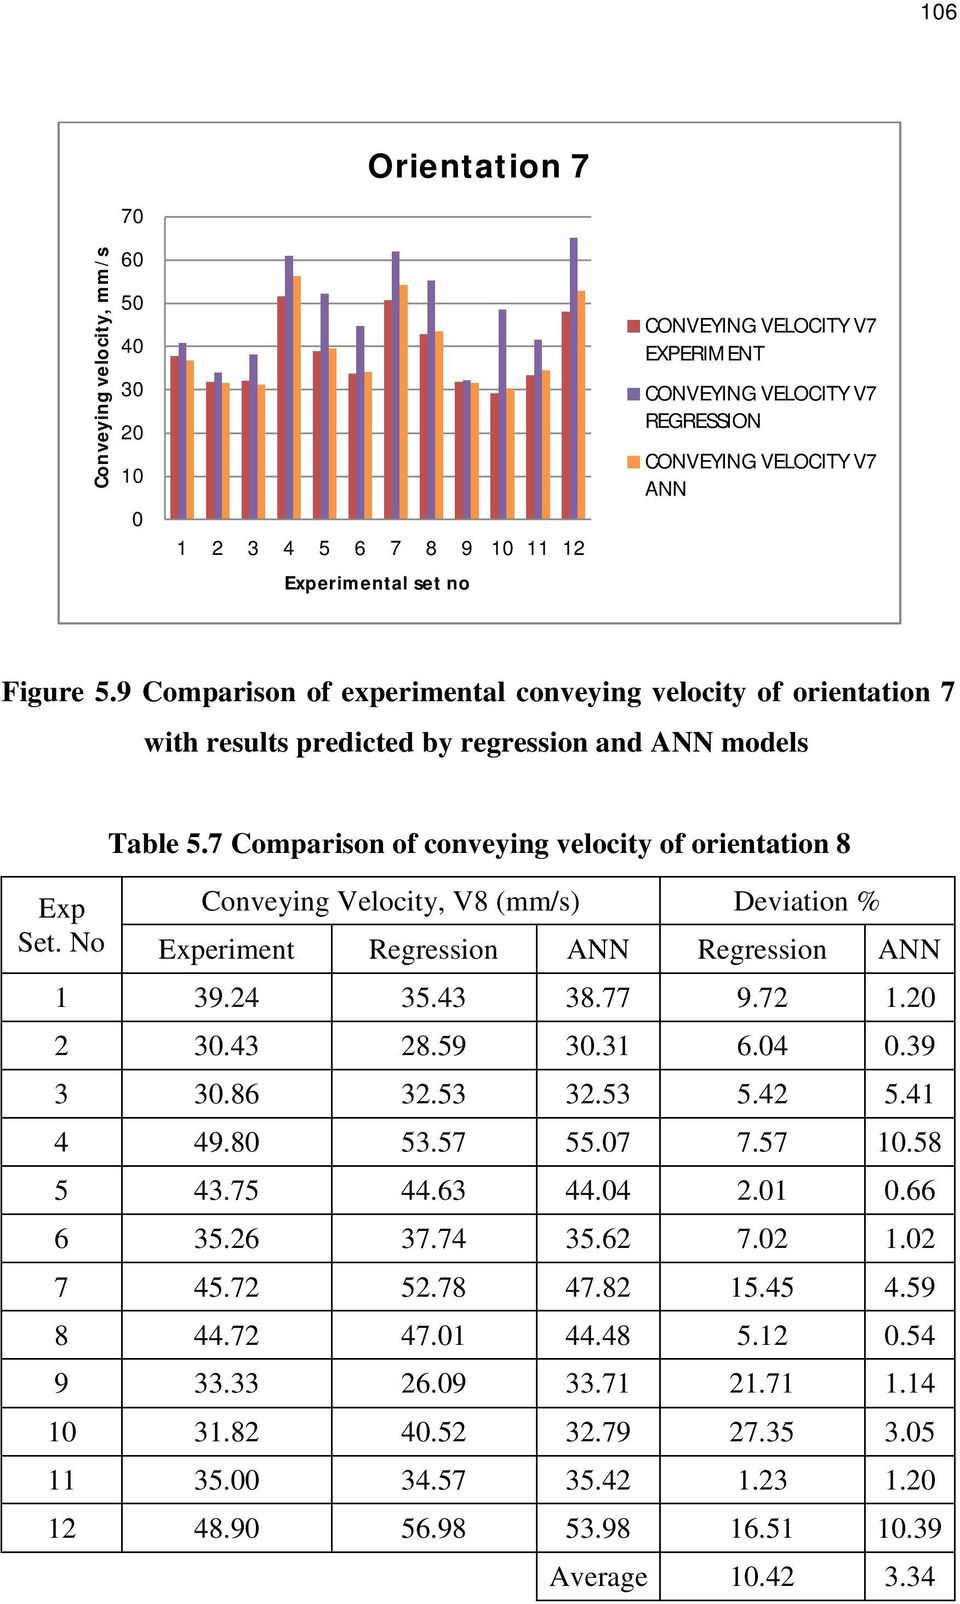 7 Comparison of conveying velocity of orientation 8 Conveying Velocity, V8 (mm/s) Deviation % Experiment Regression ANN Regression ANN 1 39.24 35.43 38.77 9.72 1.20 2 30.43 28.59 30.31 6.04 0.39 3 30.